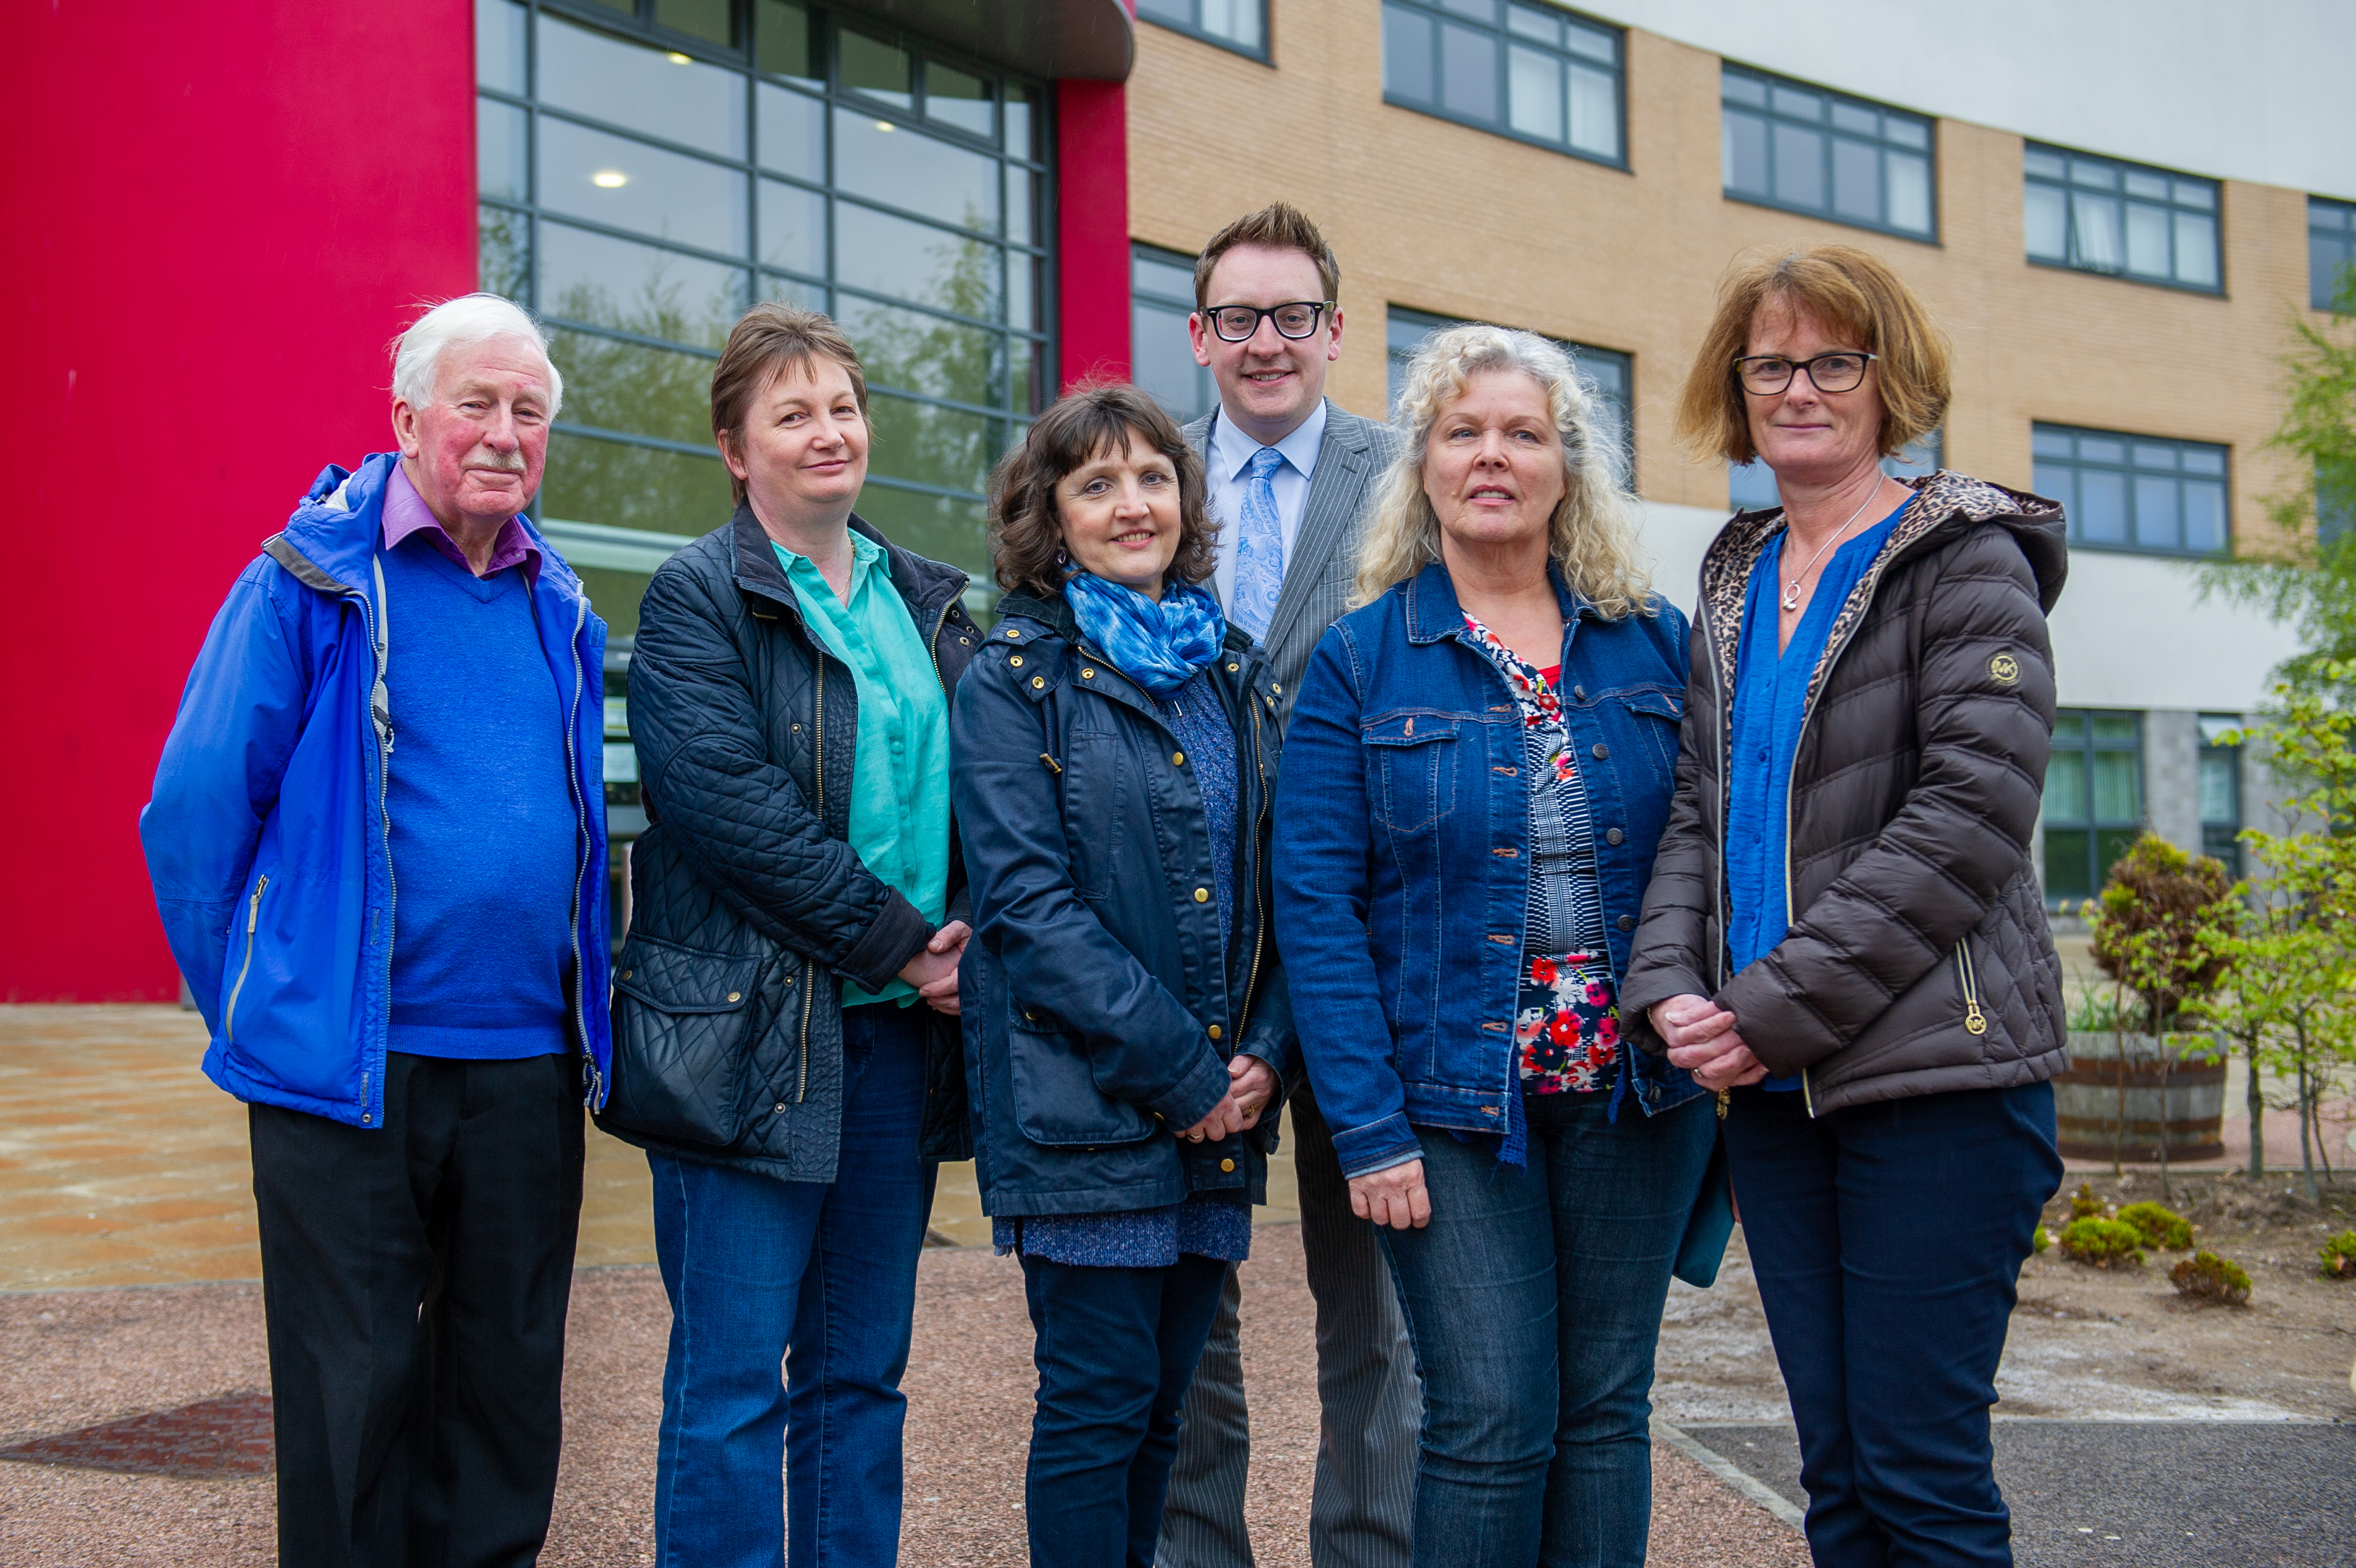 The Friends of Grove Academy who discussed the unveiling ceremony - l to r -  John Hamilton, Karen O'Rourke, Elaine McKeown, John Anderson (Principal Teacher of History), Pamela Stewart and Julie Lynch